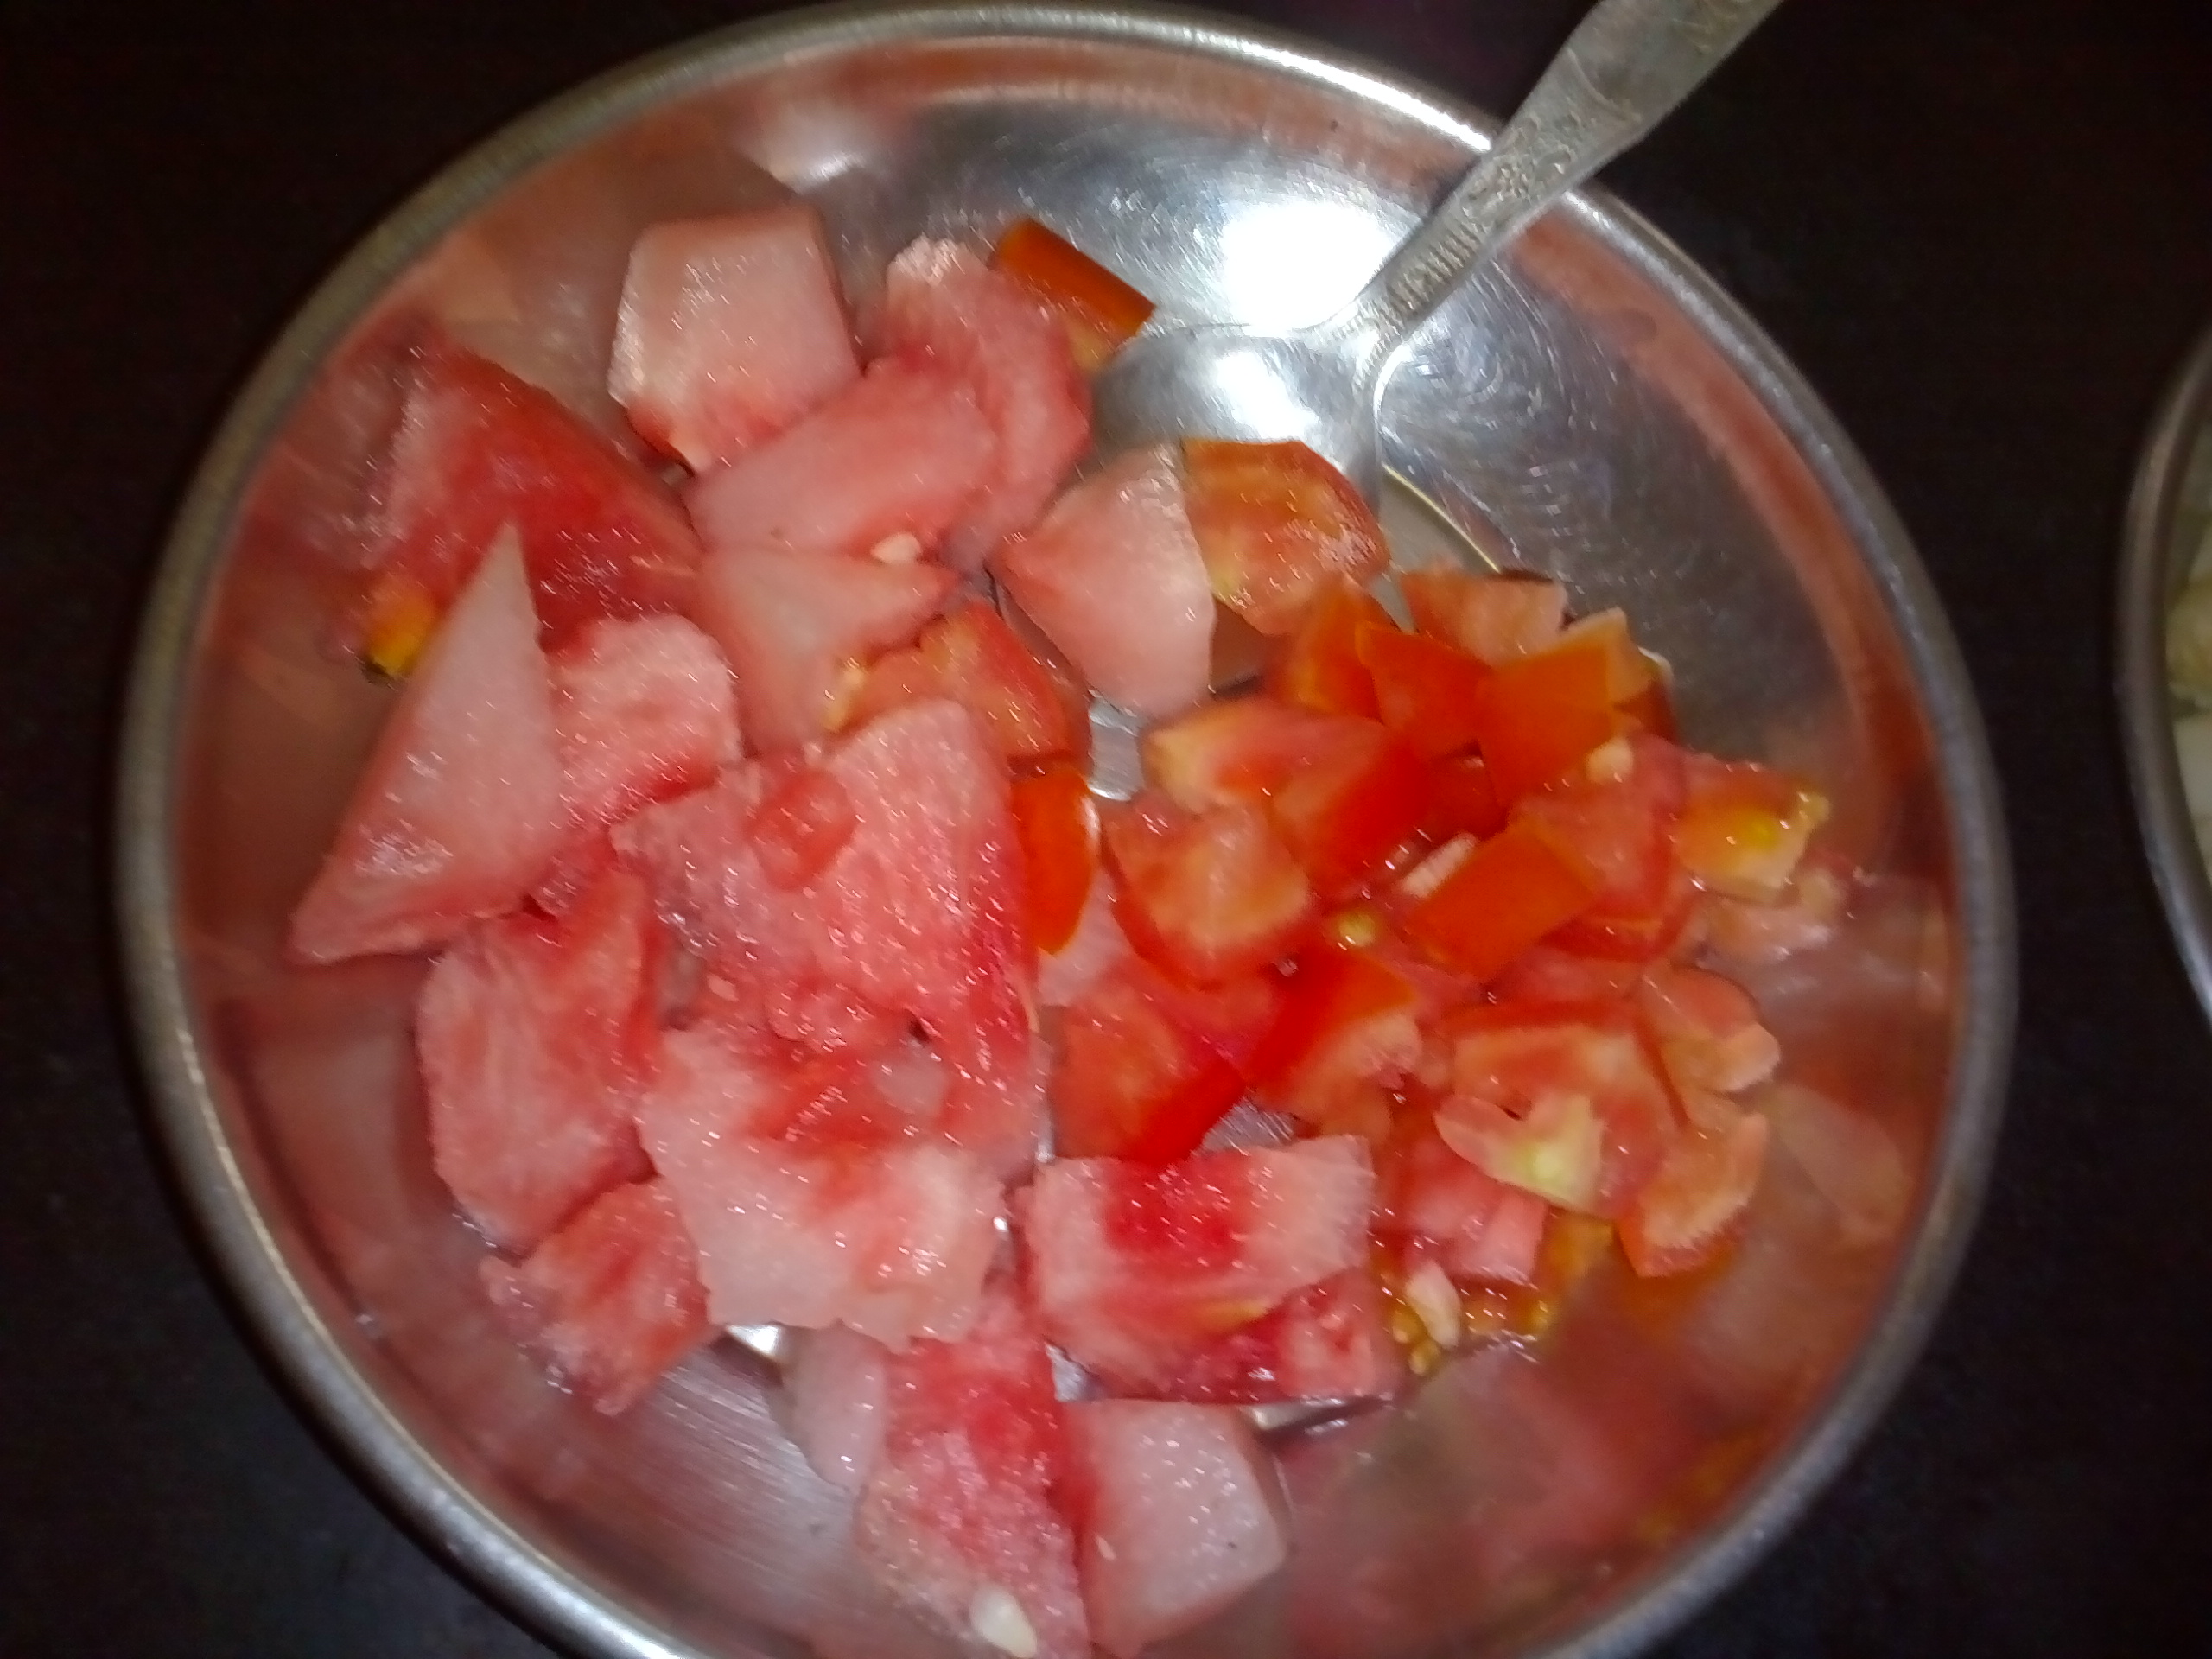 watermelon & tomato before making salad/chhayaonline.com